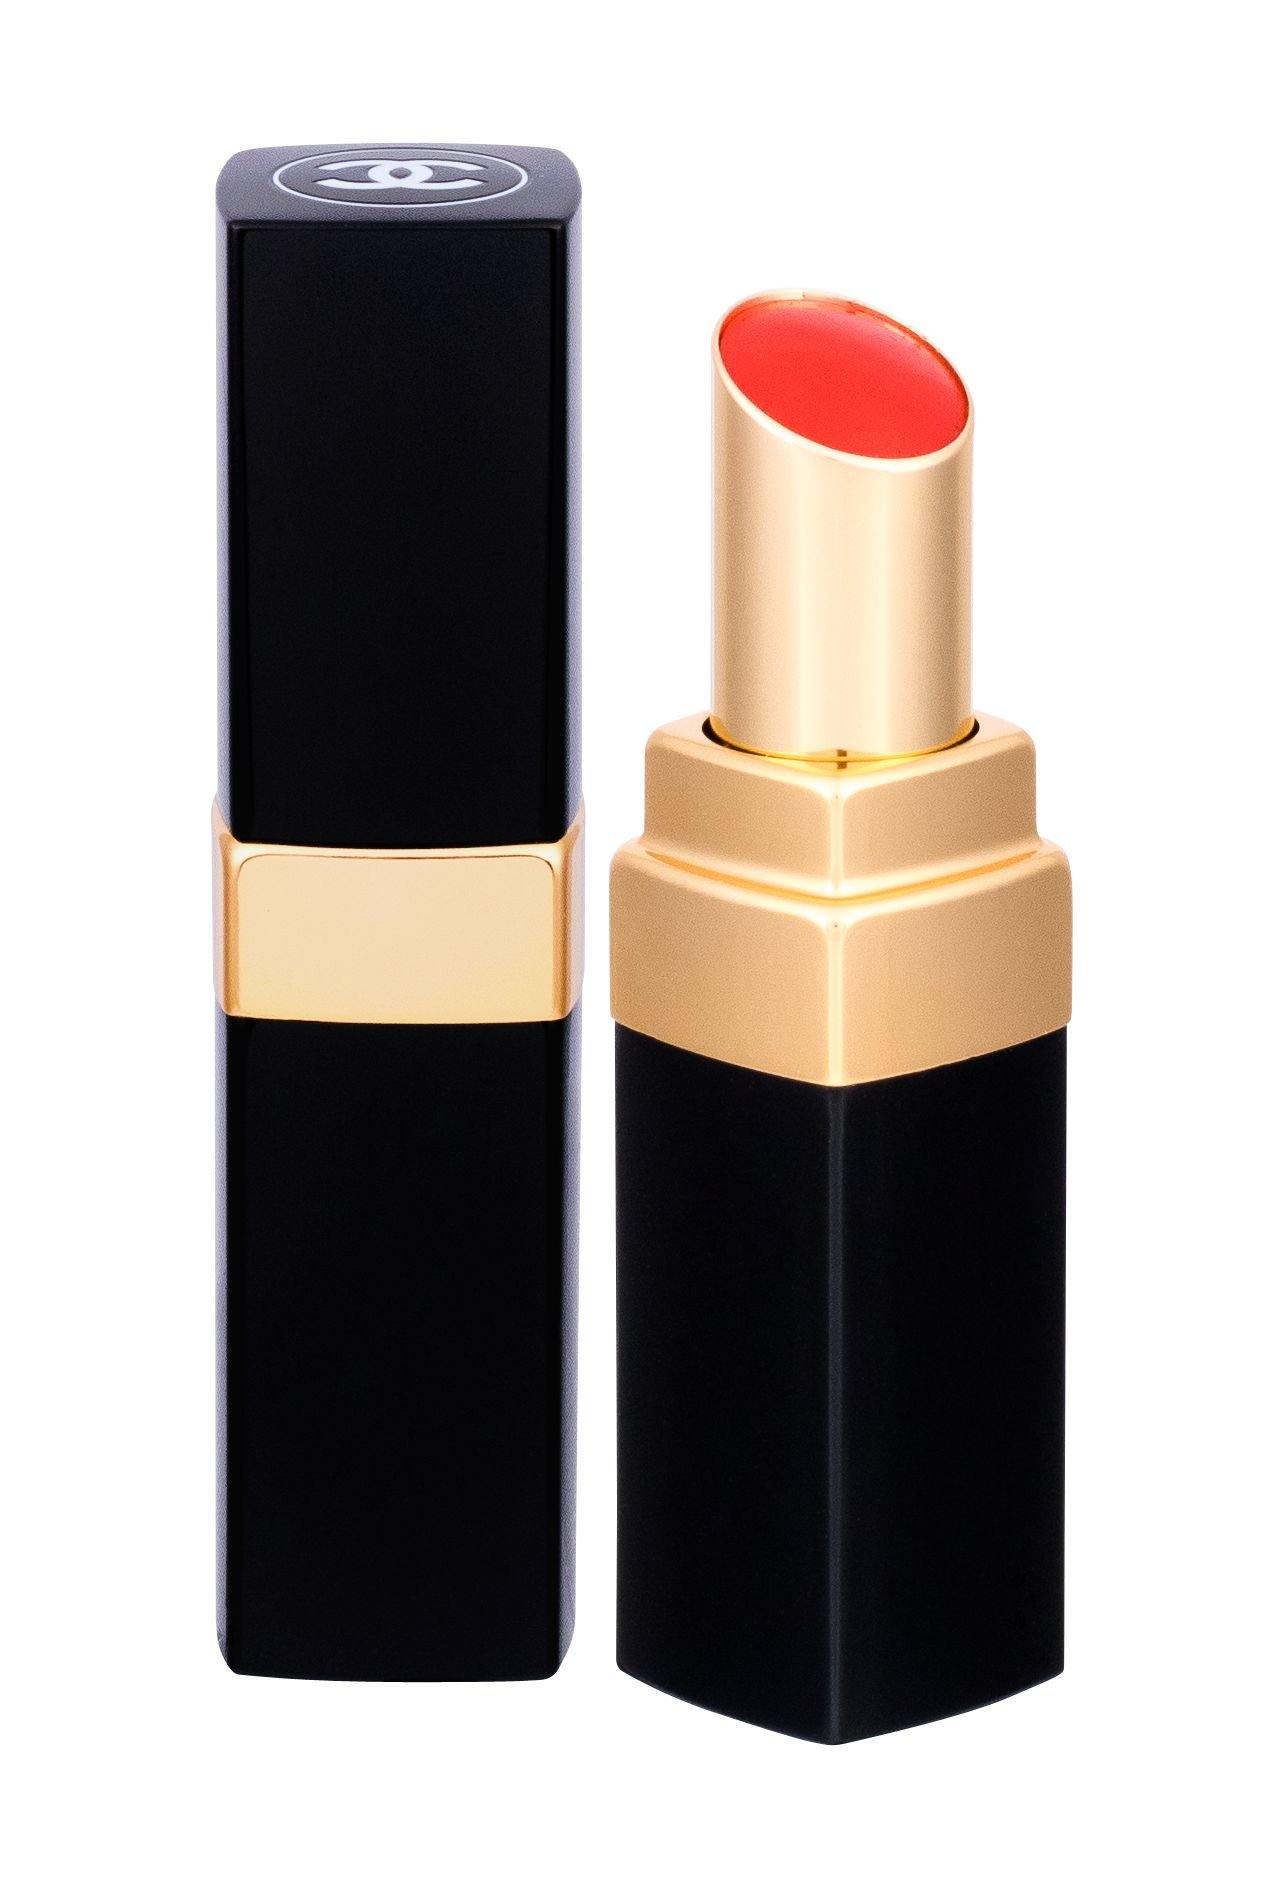 Chanel Rouge Coco Lipstick 3ml 114 Shipshape